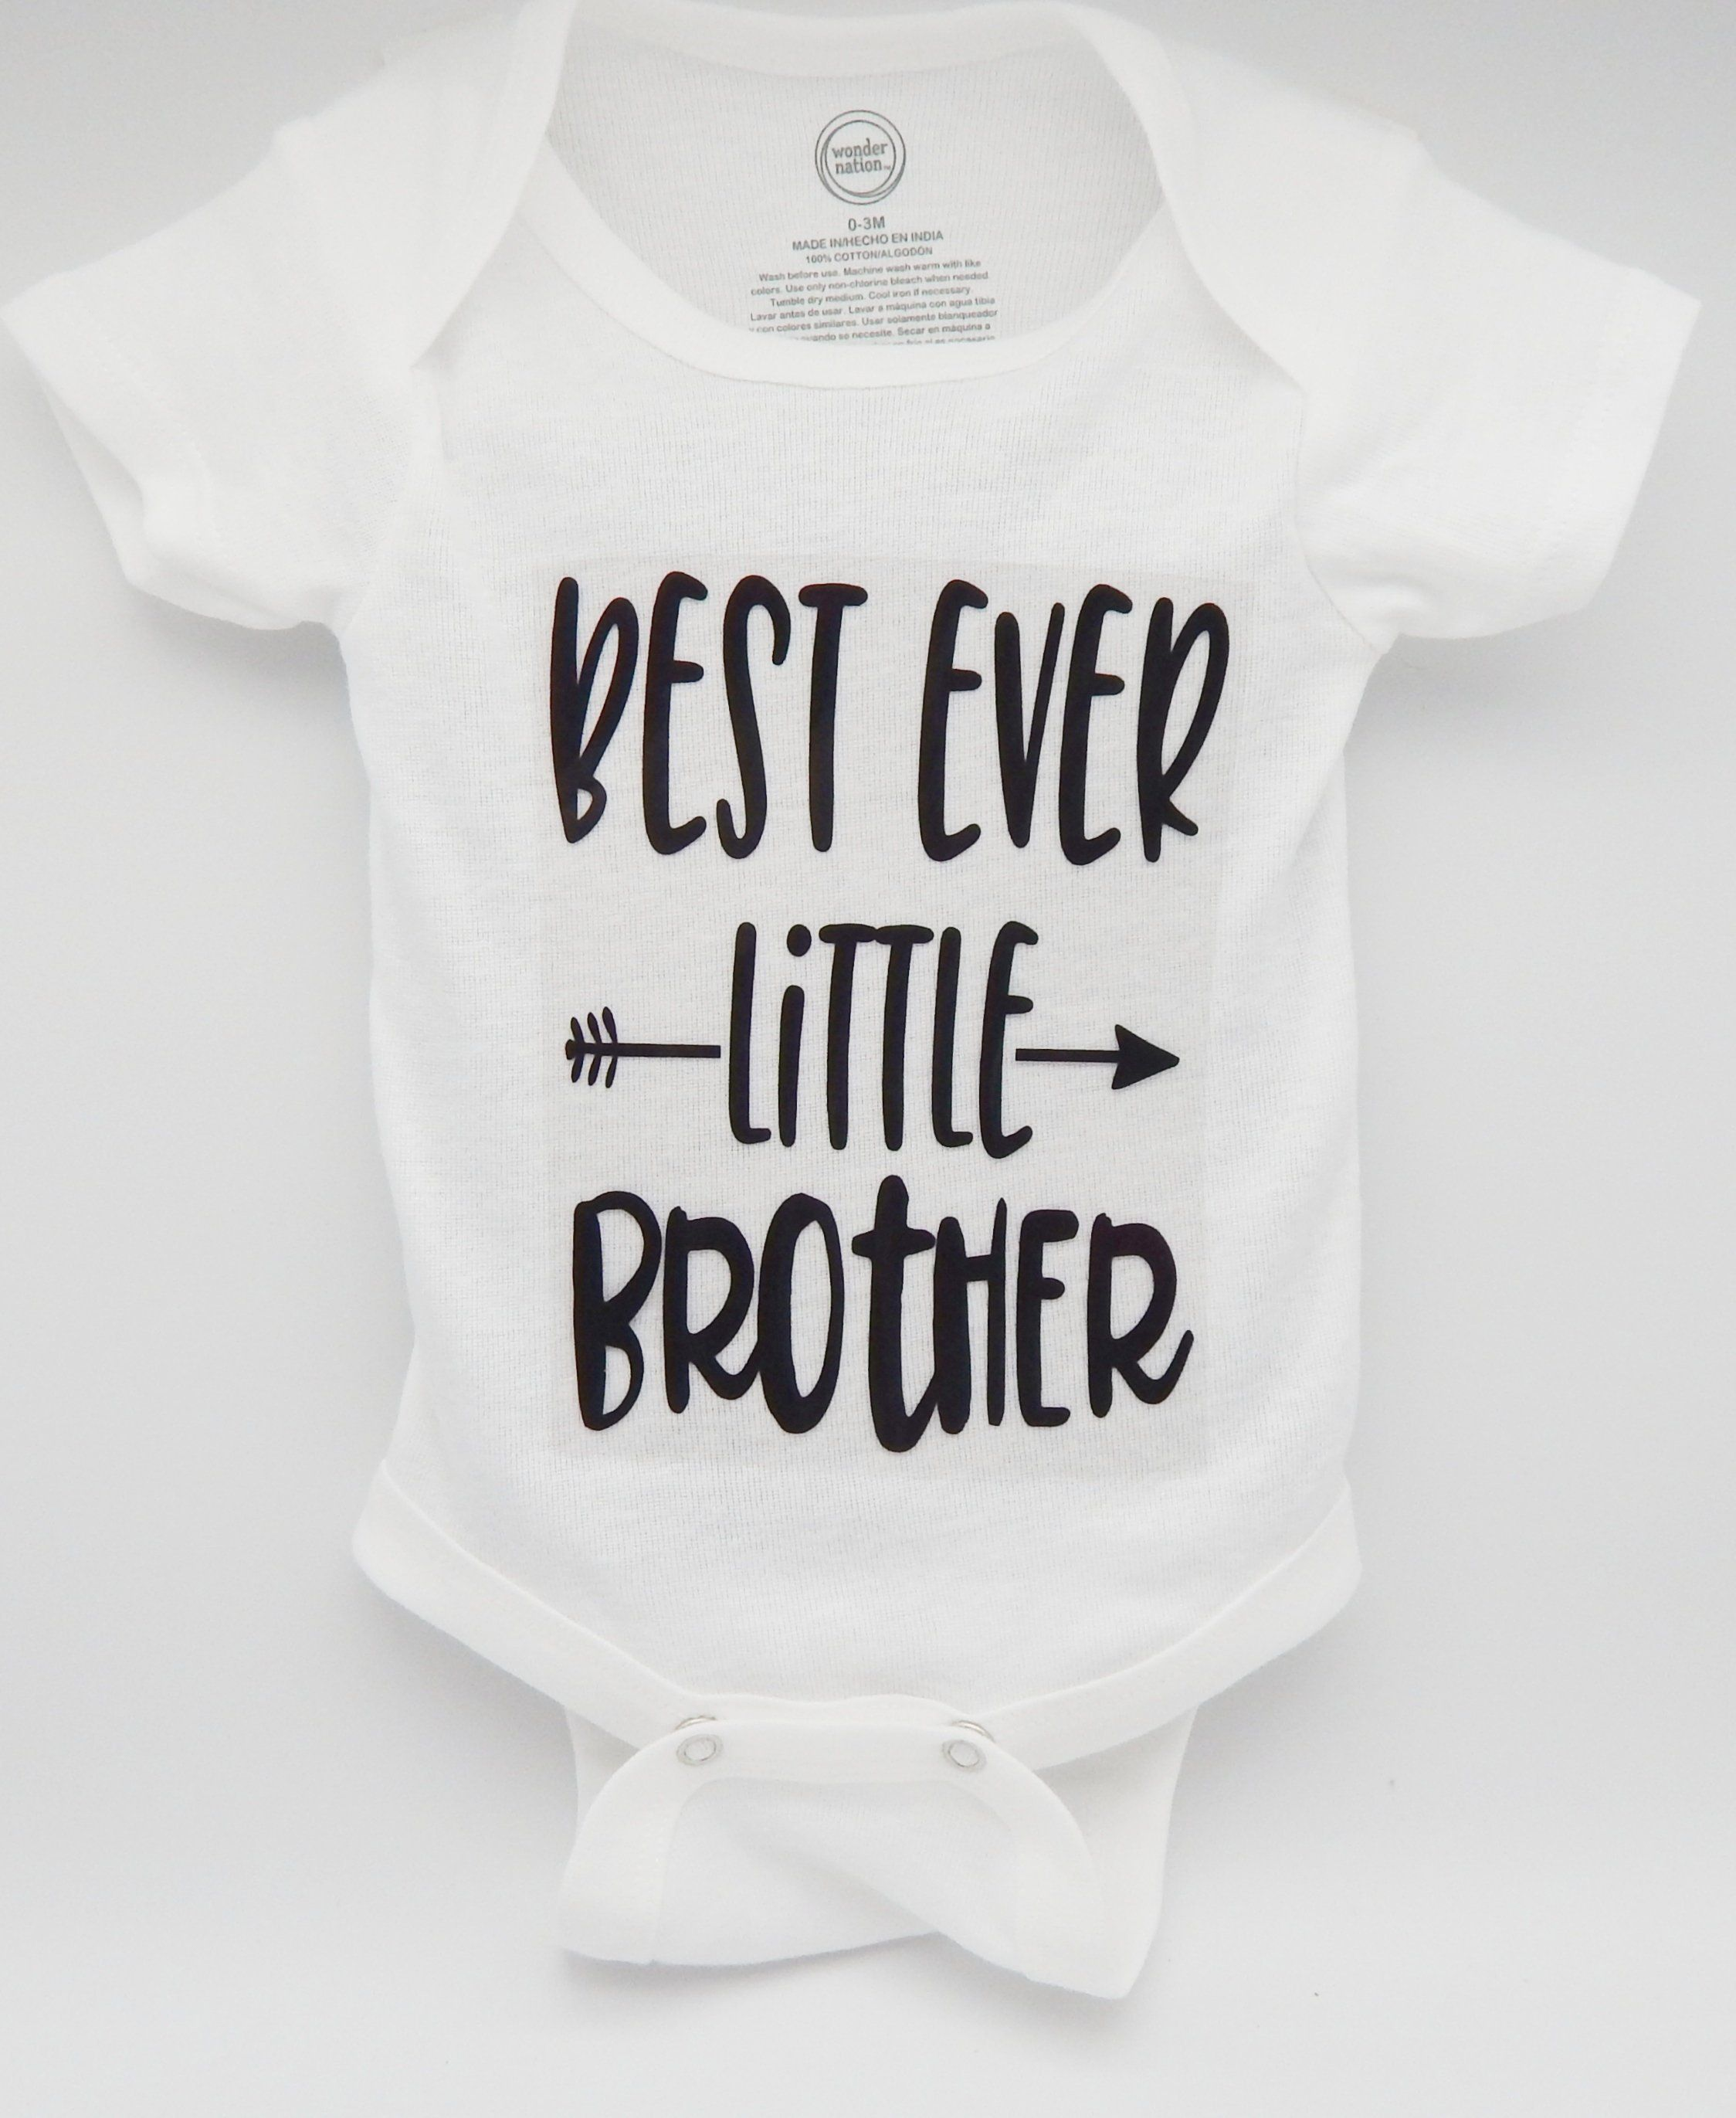 best ever little brother, baby, Baby clothes, baby boy ...